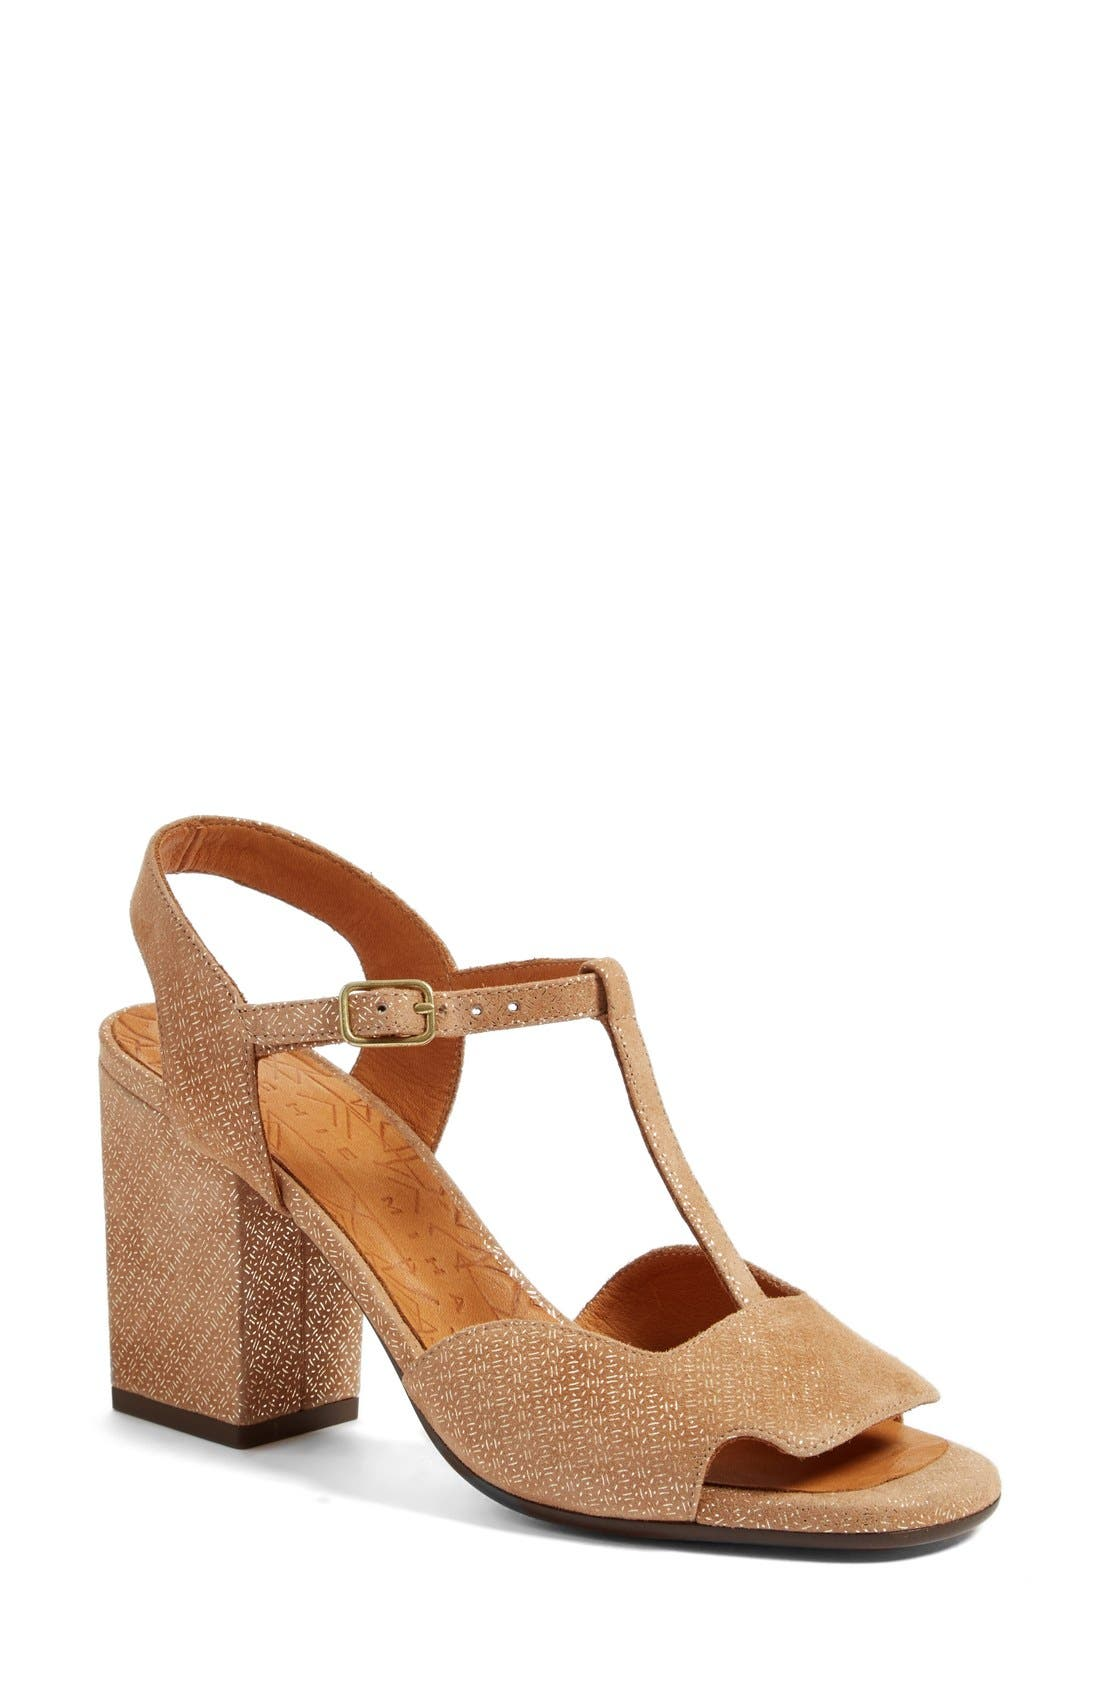 CHIE MIHARA Birthe T-Strap Sandal